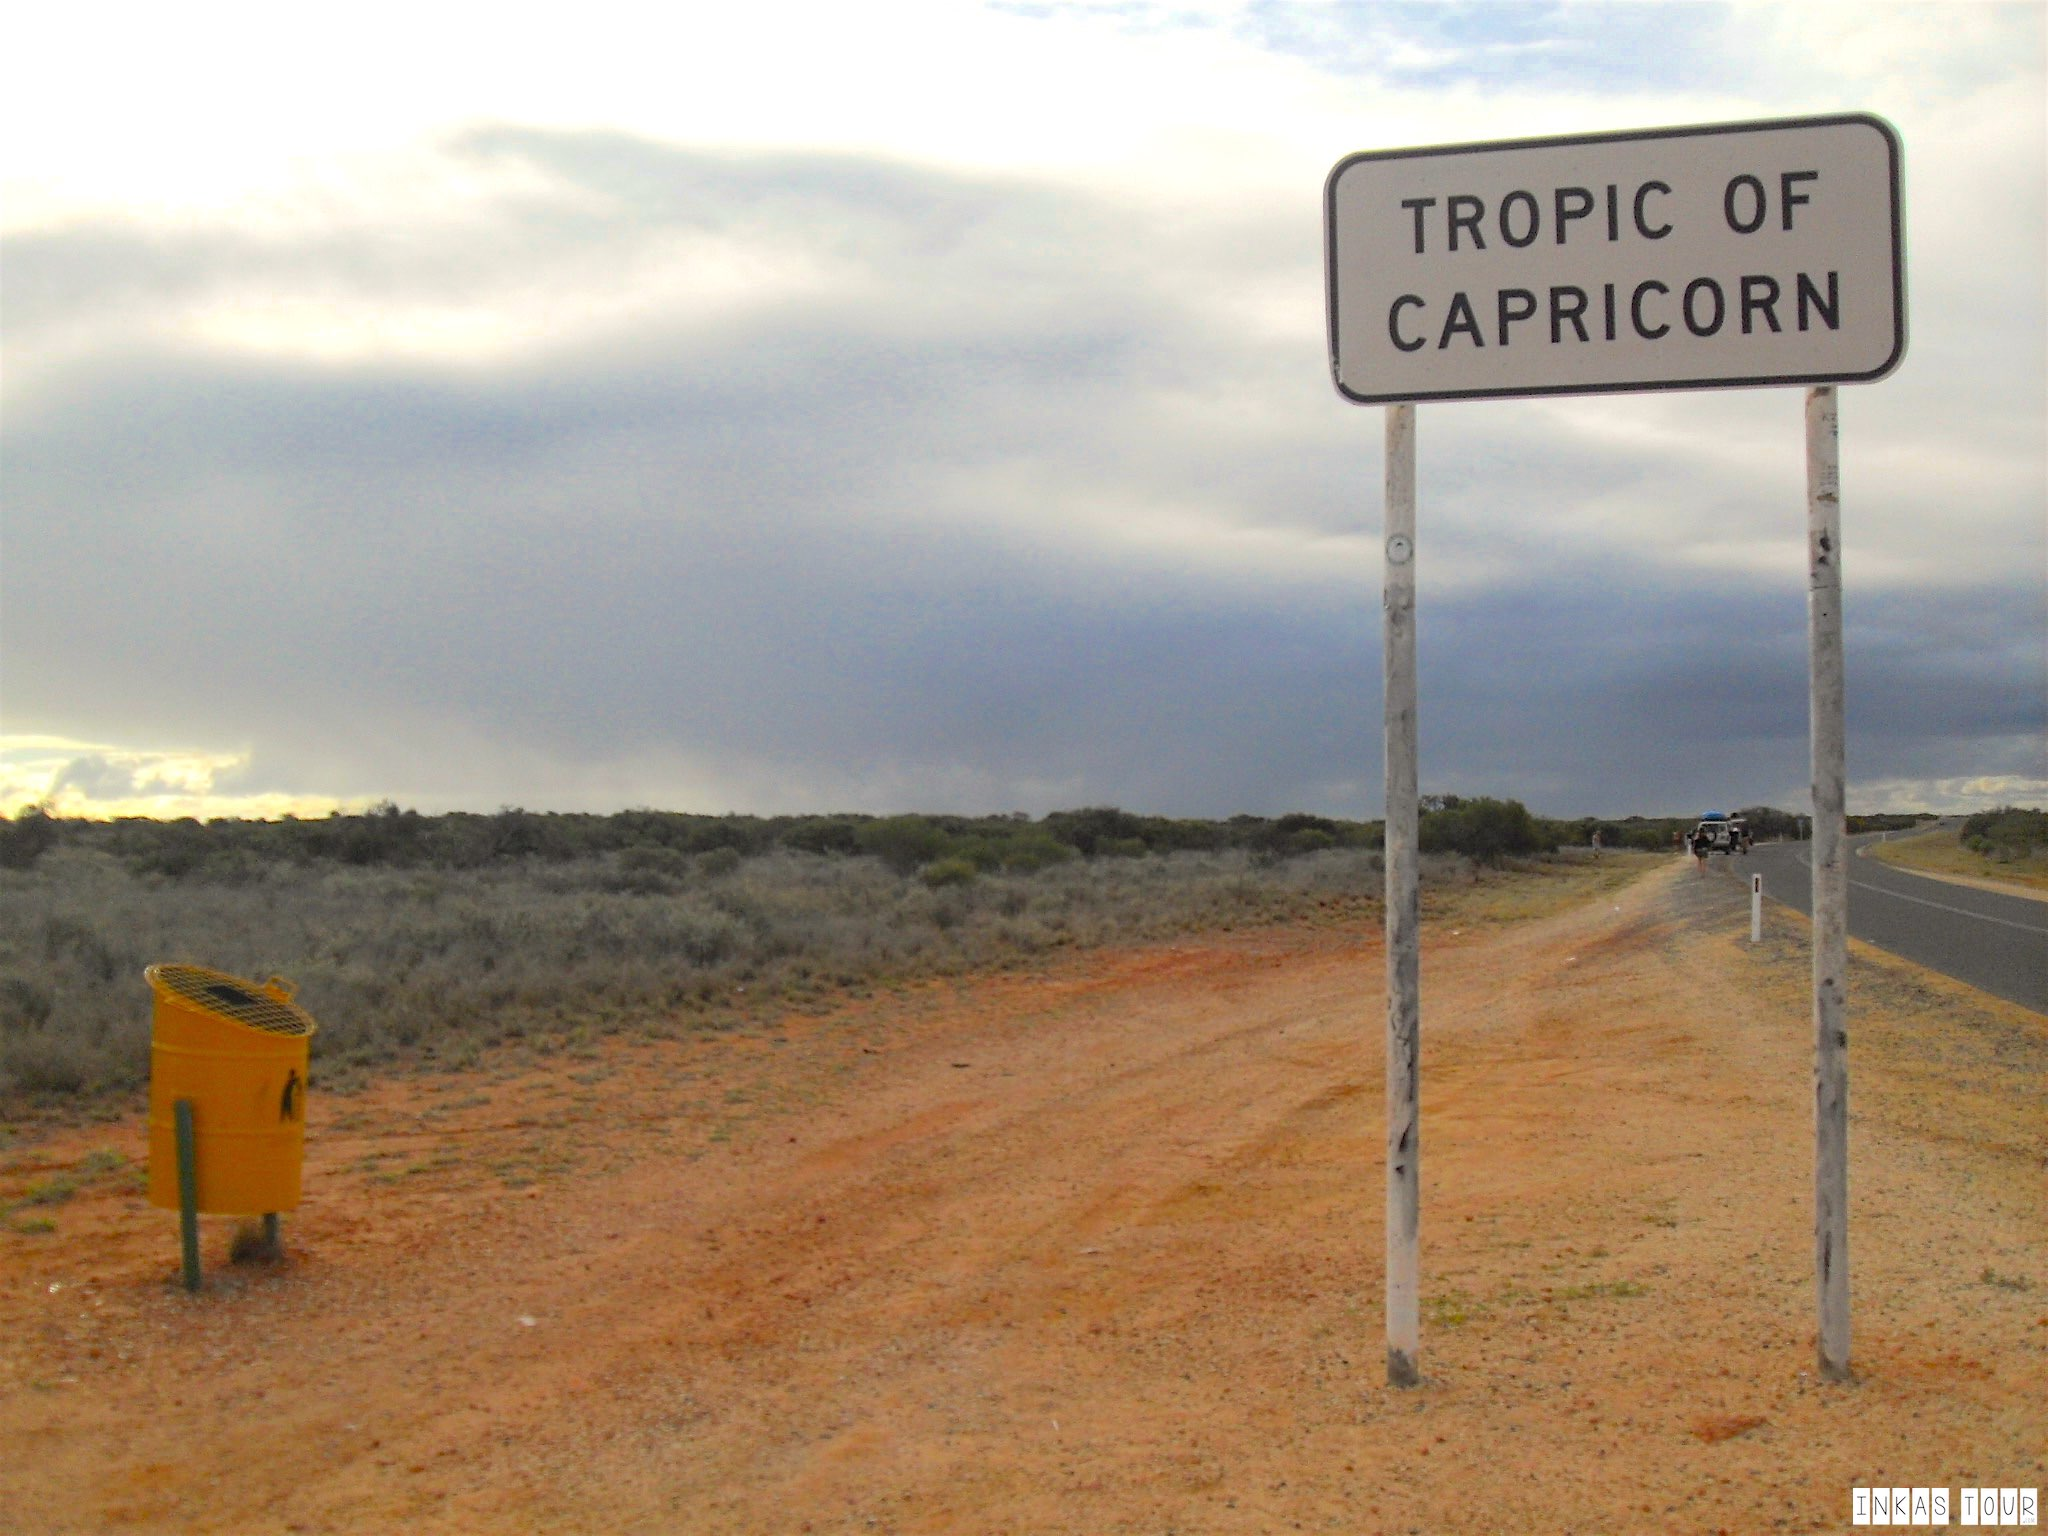 At the Tropic of Capricorn in Australia, is a Trash Can!!